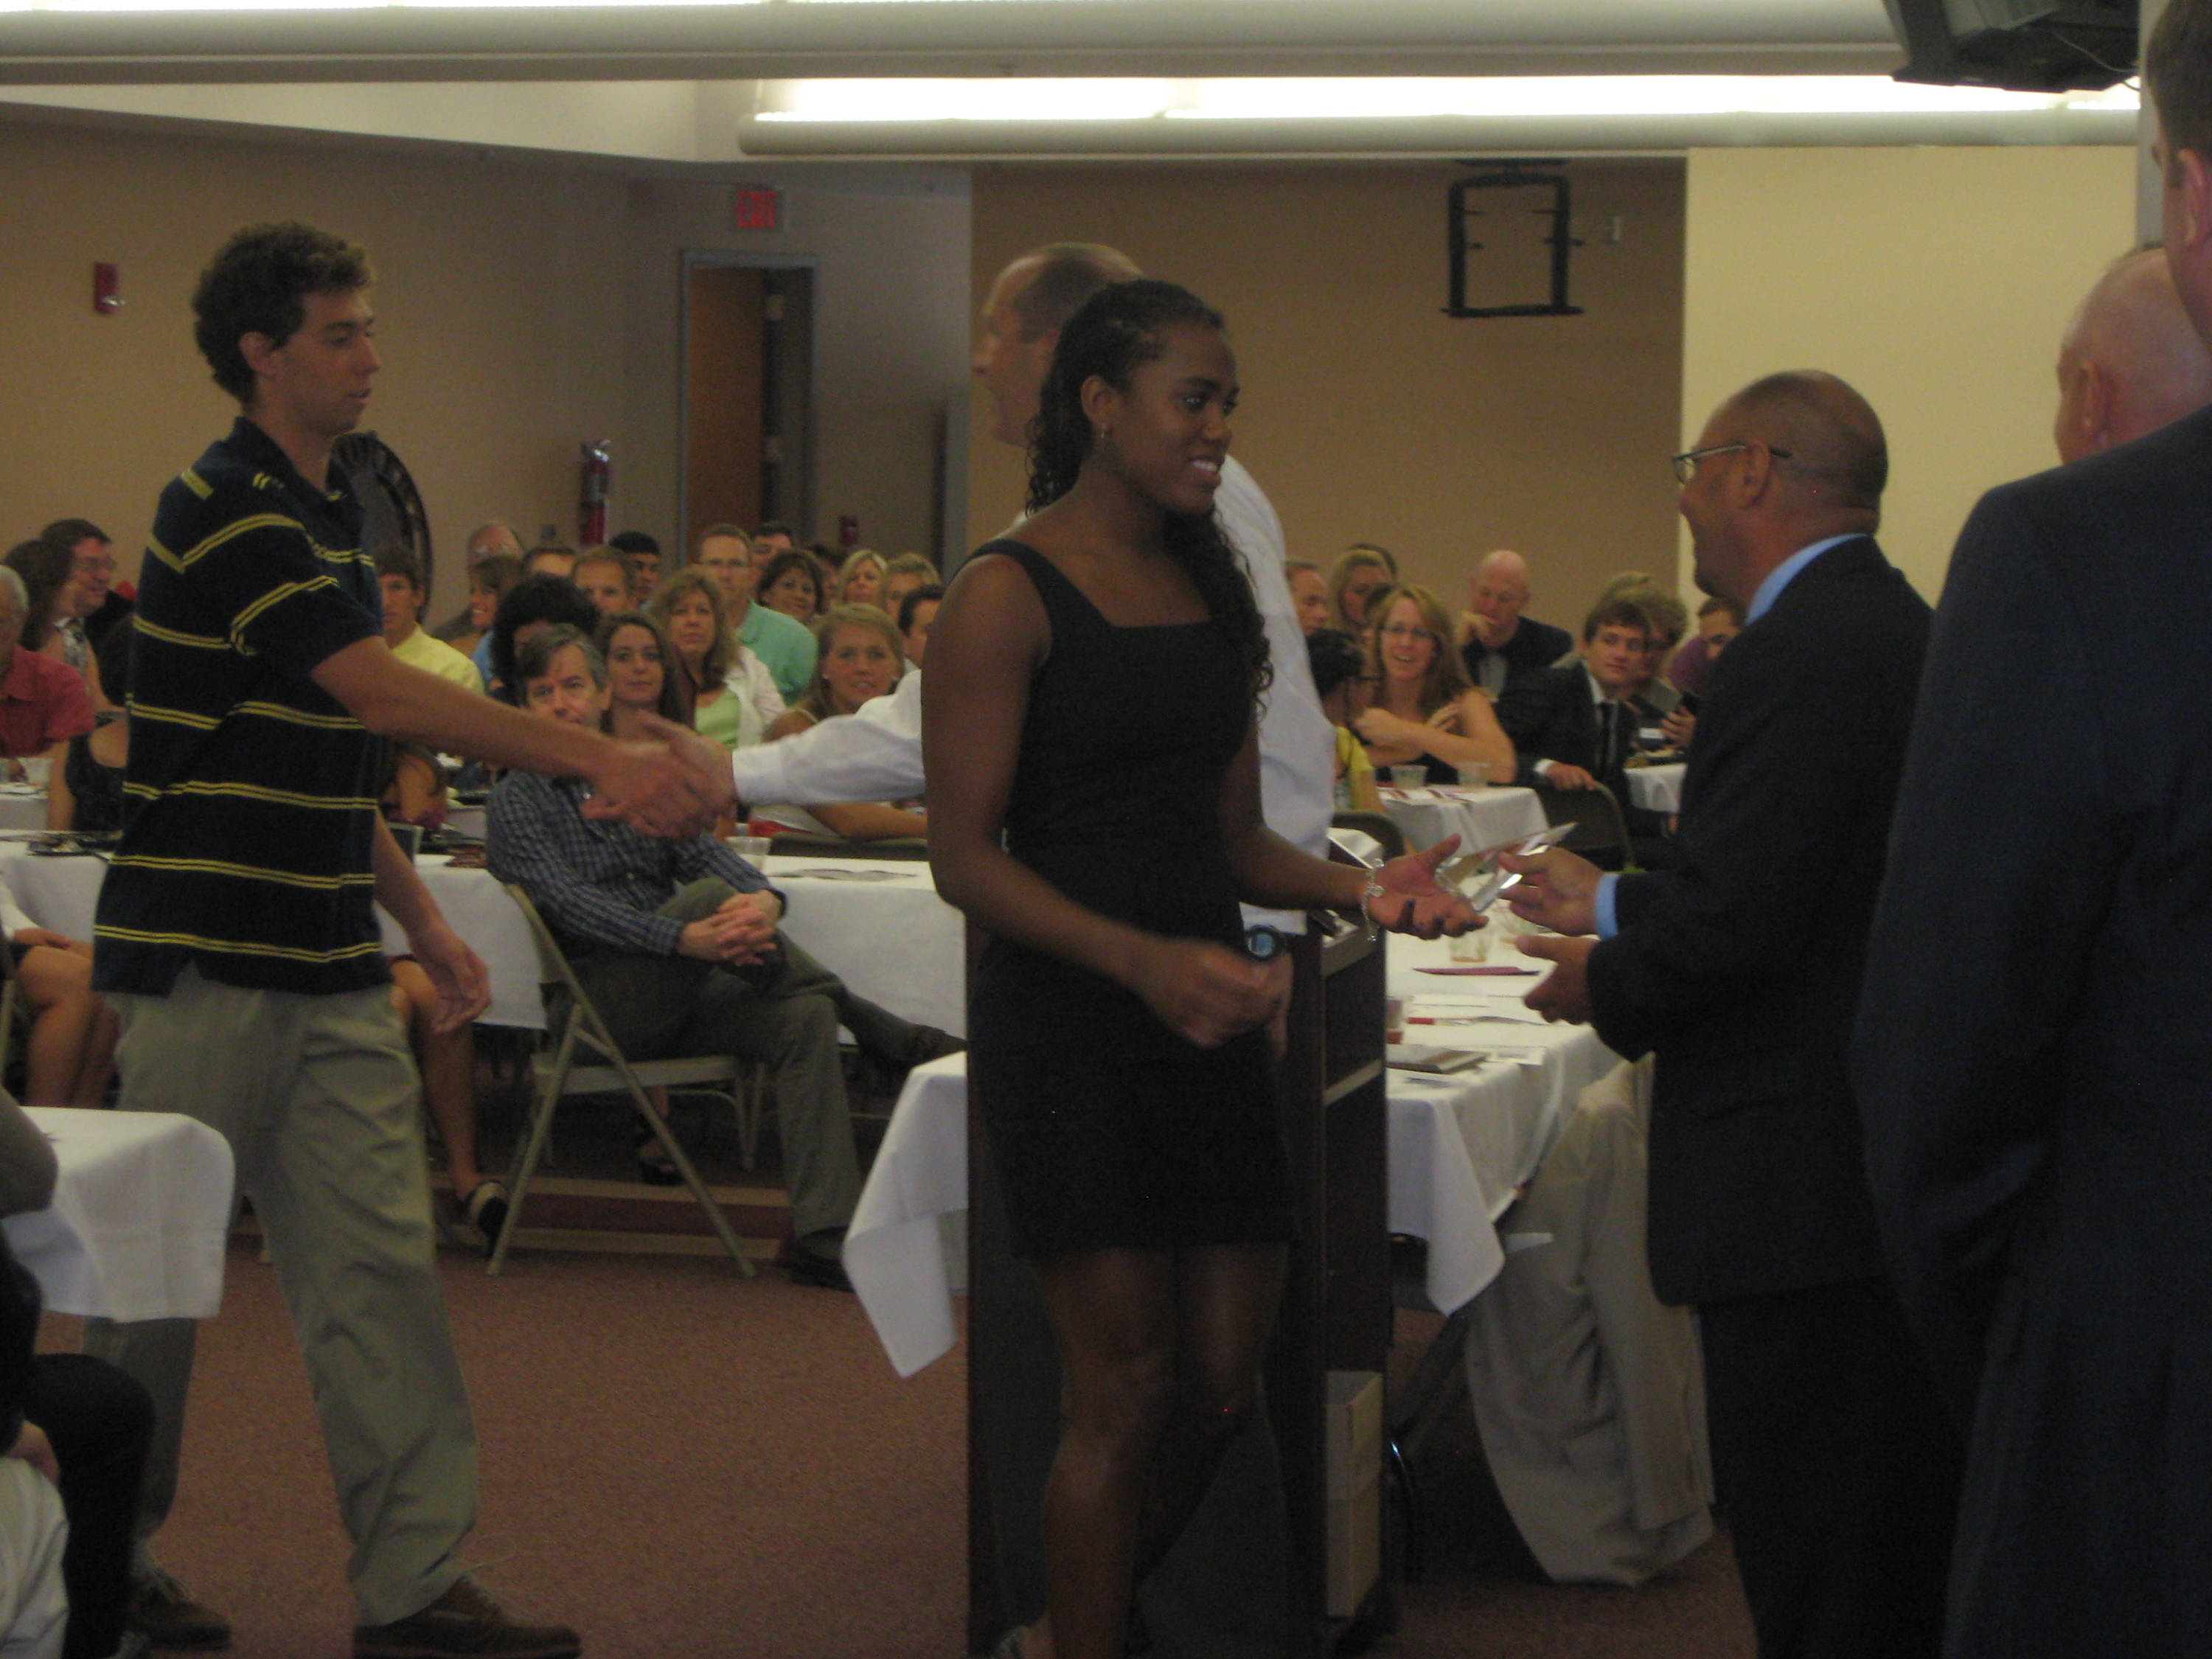 2011 Swimming and Diving Banquet: Tiffany Oliver and Tyler Sell